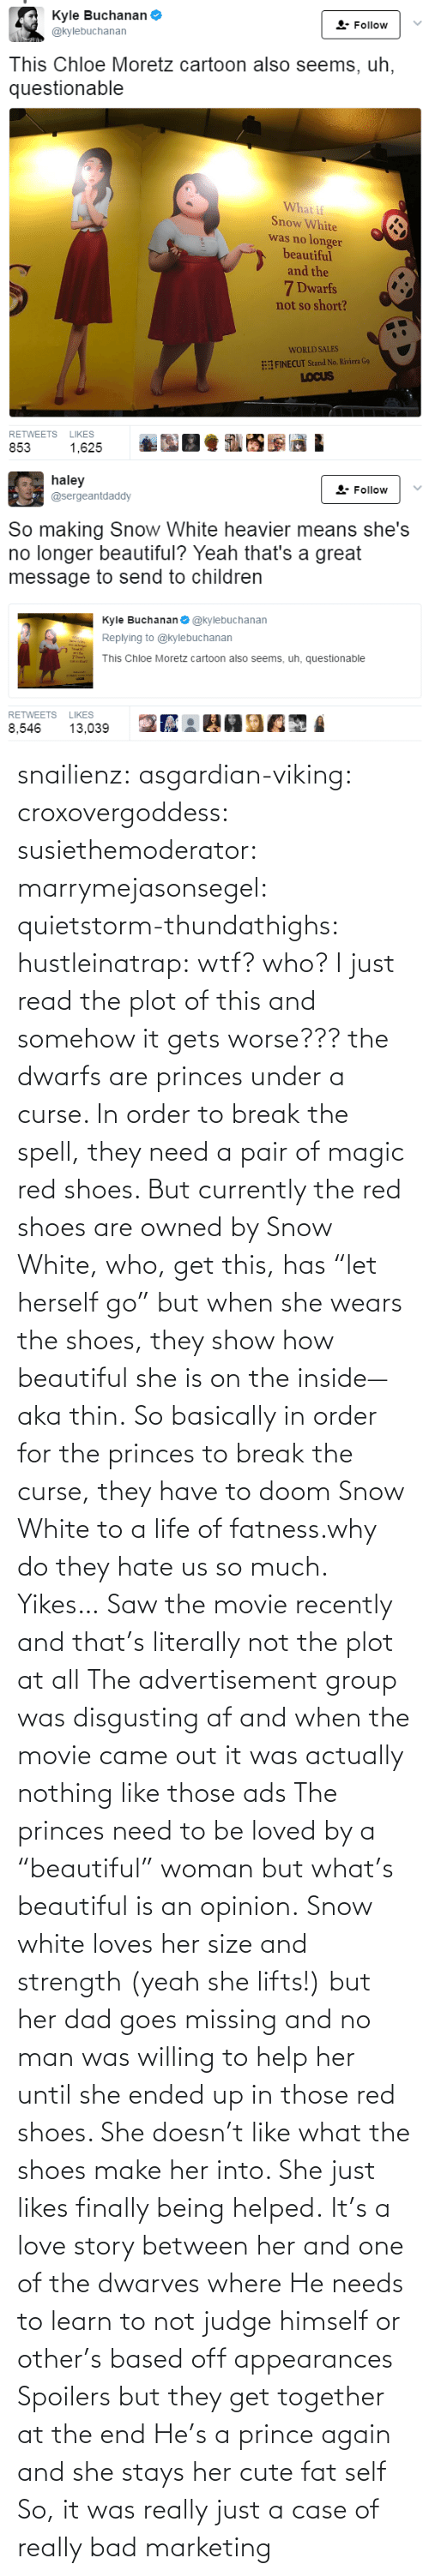 "Herself: snailienz: asgardian-viking:  croxovergoddess:  susiethemoderator:  marrymejasonsegel:   quietstorm-thundathighs:  hustleinatrap: wtf?  who?   I just read the plot of this and somehow it gets worse??? the dwarfs are princes under a curse. In order to break the spell, they need a pair of magic red shoes. But currently the red shoes are owned by Snow White, who, get this, has ""let herself go"" but when she wears the shoes, they show how beautiful she is on the inside—aka thin. So basically in order for the princes to break the curse, they have to doom Snow White to a life of fatness.why do they hate us so much.   Yikes…    Saw the movie recently and that's literally not the plot at all The advertisement group was disgusting af and when the movie came out it was actually nothing like those ads The princes need to be loved by a ""beautiful"" woman but what's beautiful is an opinion. Snow white loves her size and strength (yeah she lifts!) but her dad goes missing and no man was willing to help her until she ended up in those red shoes. She doesn't like what the shoes make her into. She just likes finally being helped. It's a love story between her and one of the dwarves where He needs to learn to not judge himself or other's based off appearances  Spoilers but they get together at the end He's a prince again and she stays her cute fat self  So, it was really just a case of really bad marketing"